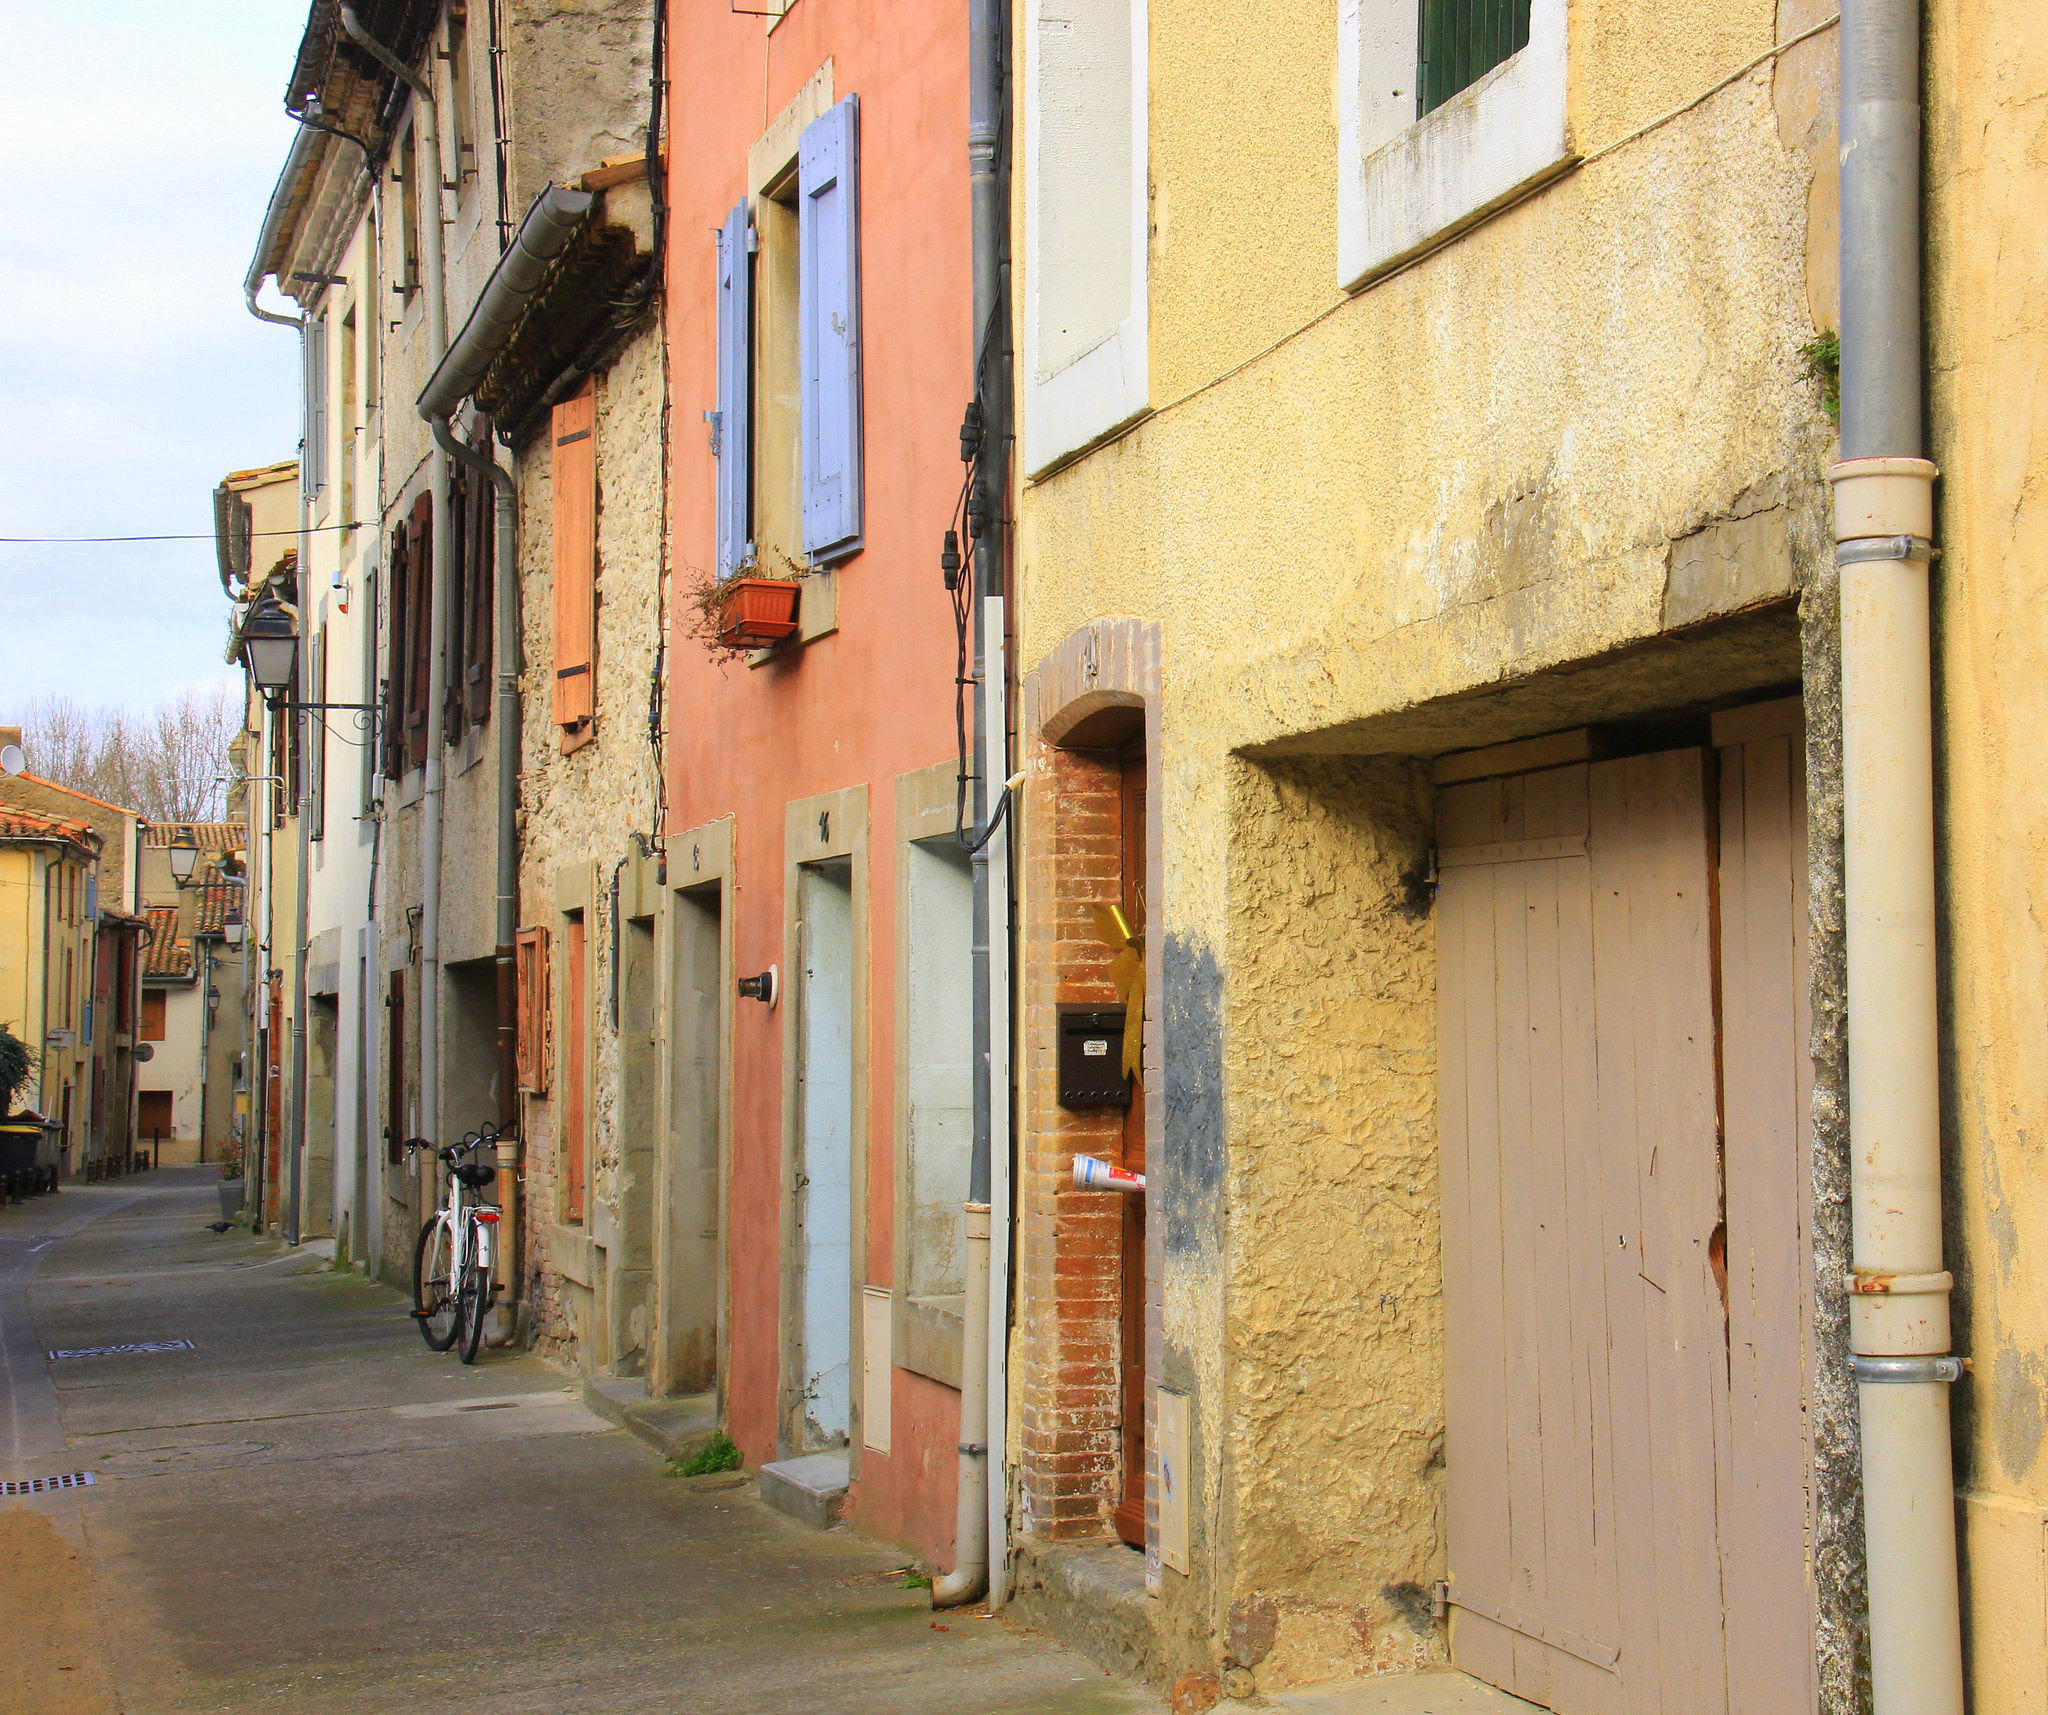 The old row houses of Carcassonne